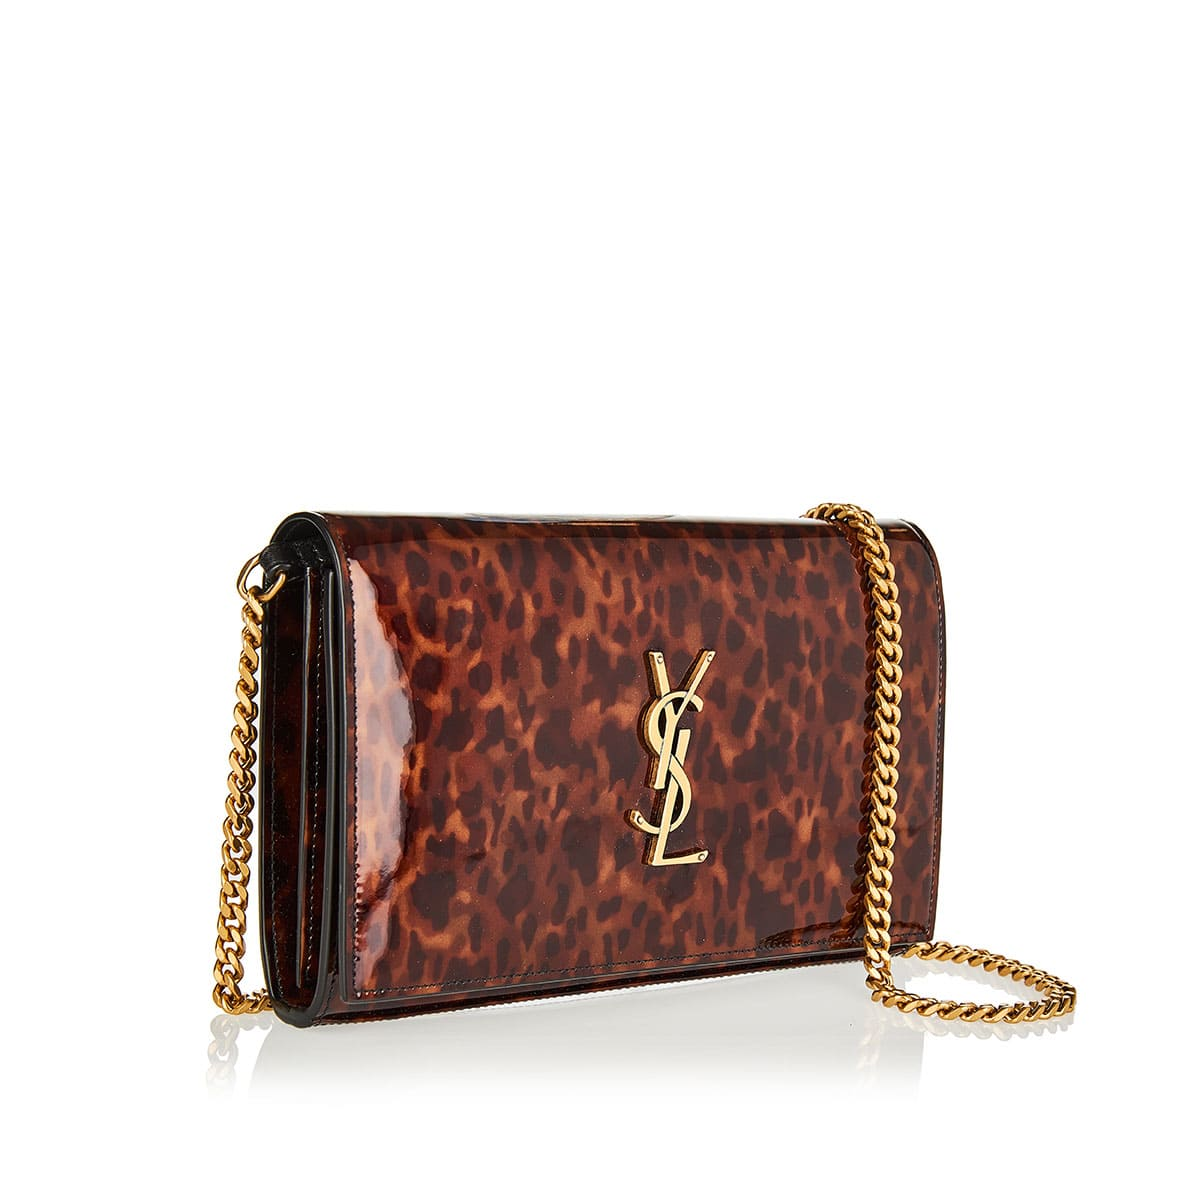 Kate tortoiseshell patent chain bag